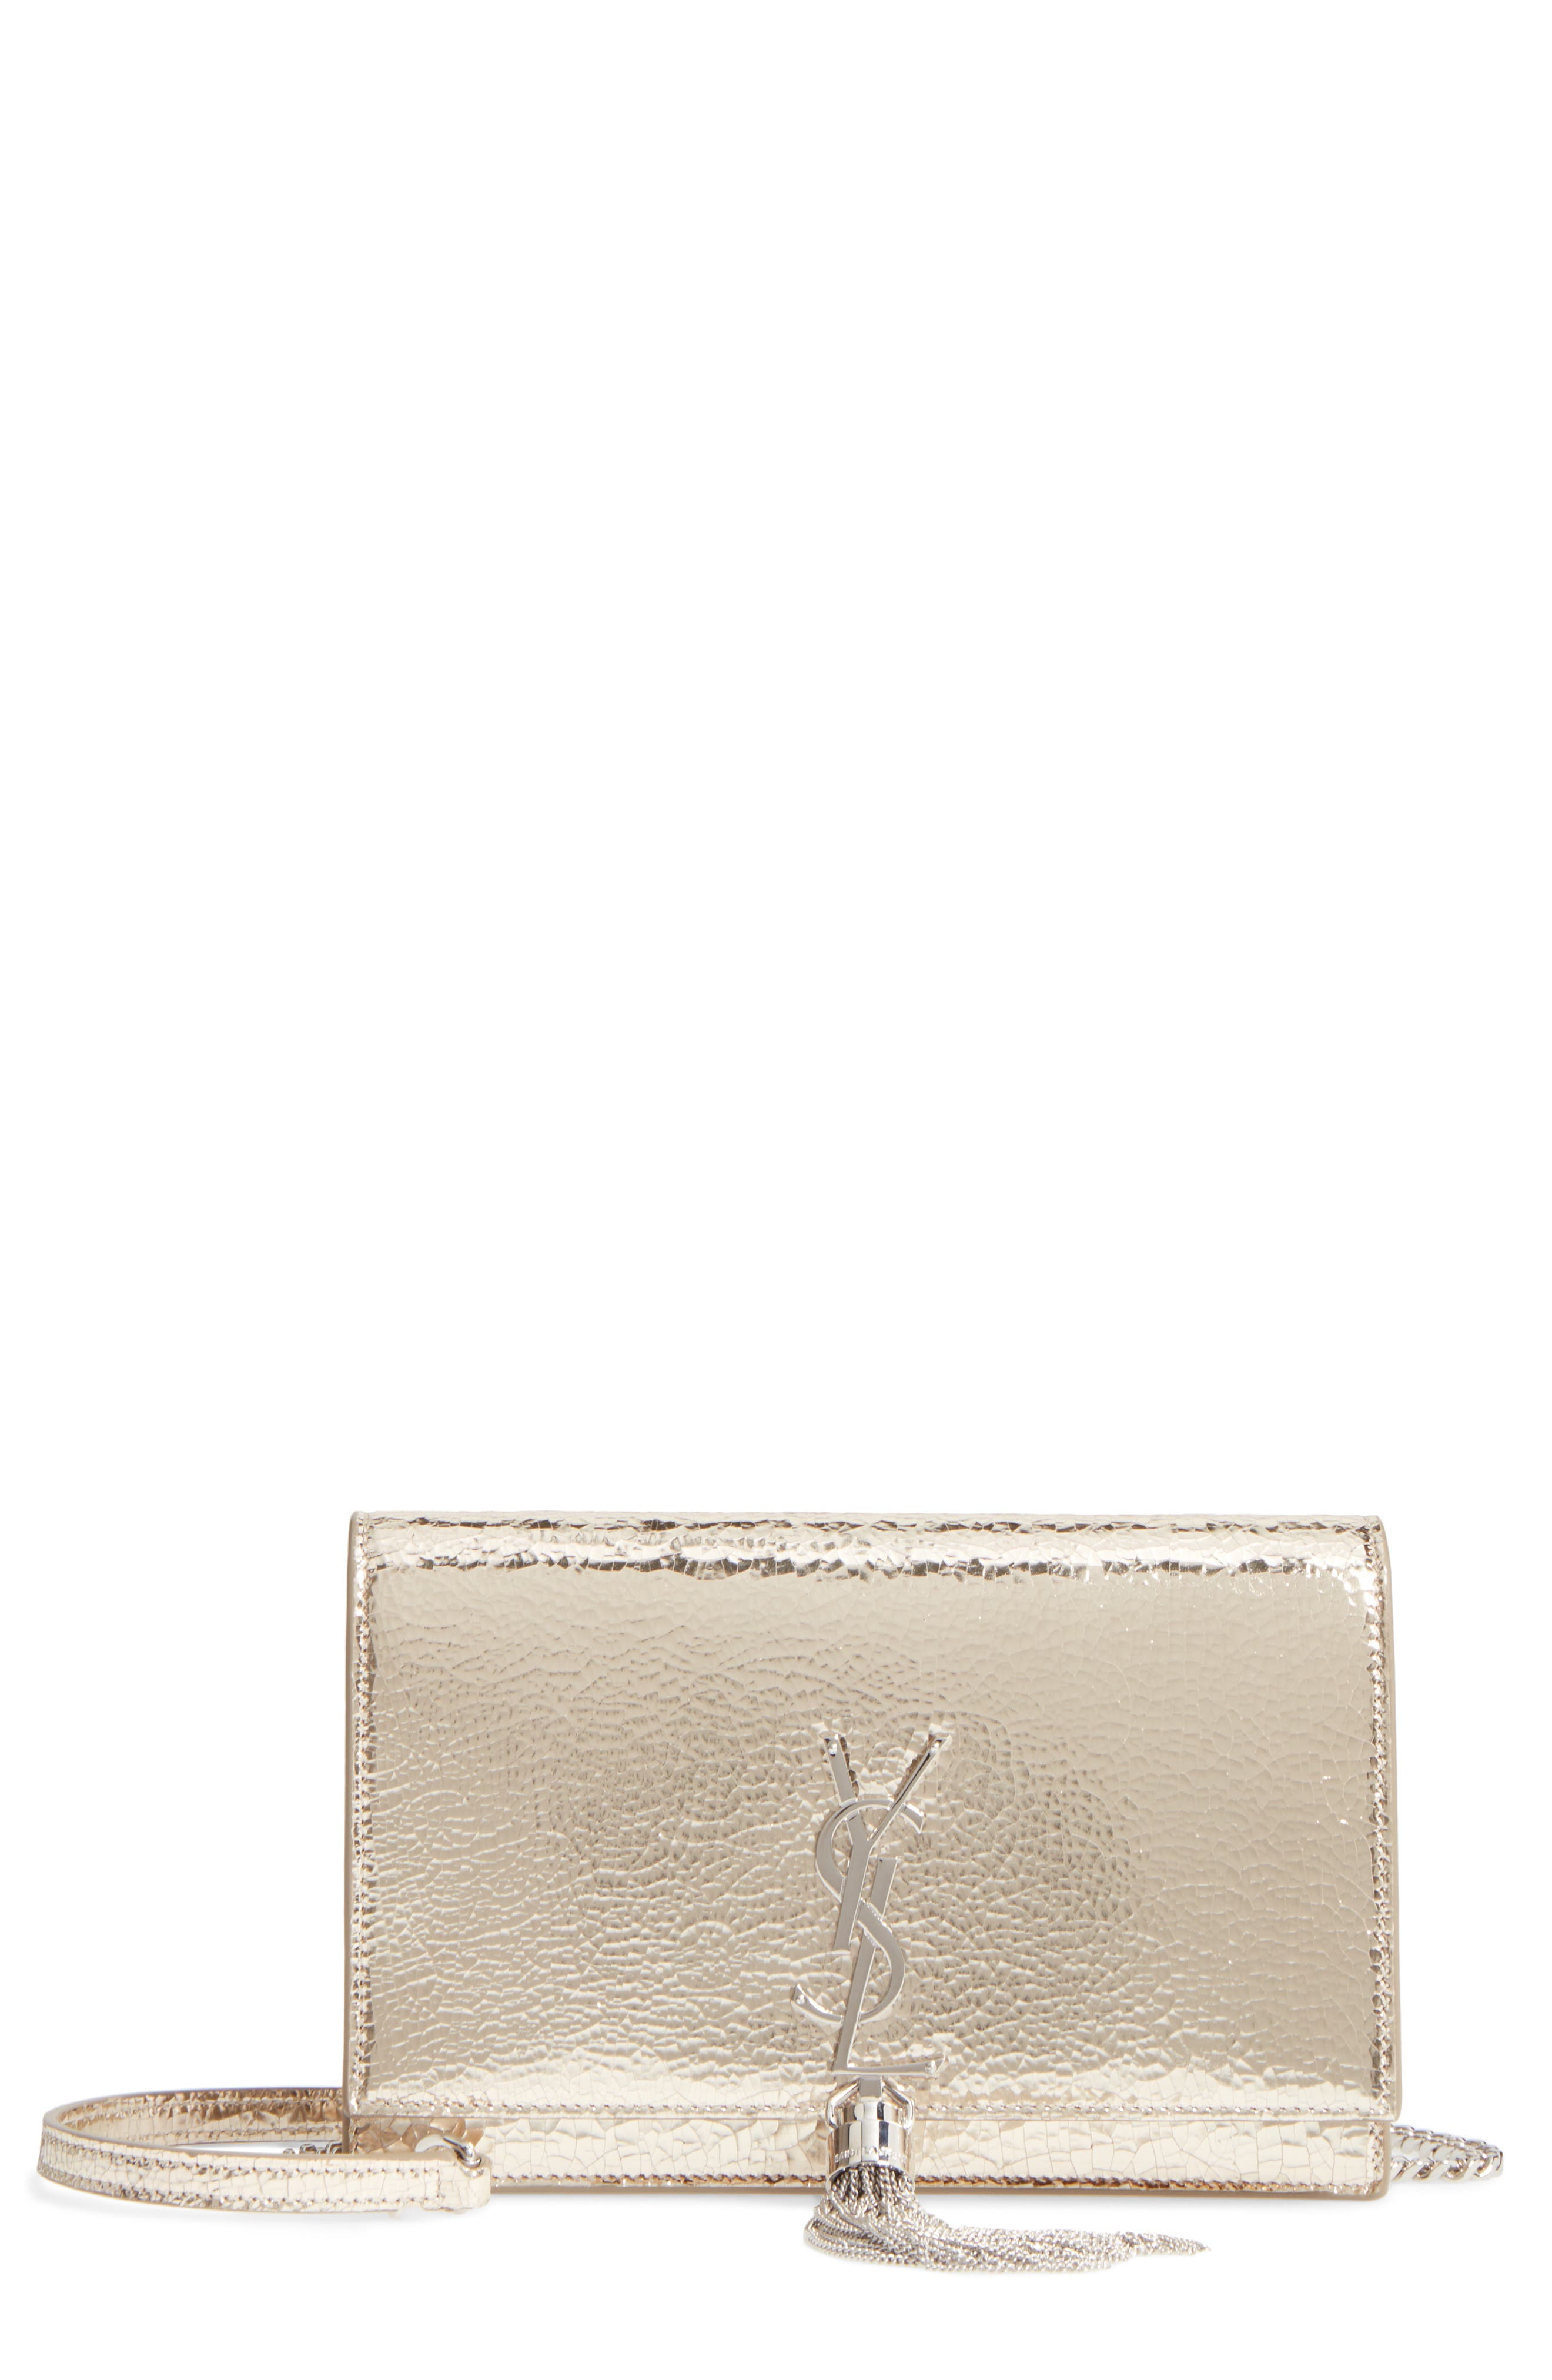 Main Image - Saint Laurent Kate Crackle Calfskin Wallet on a Chain